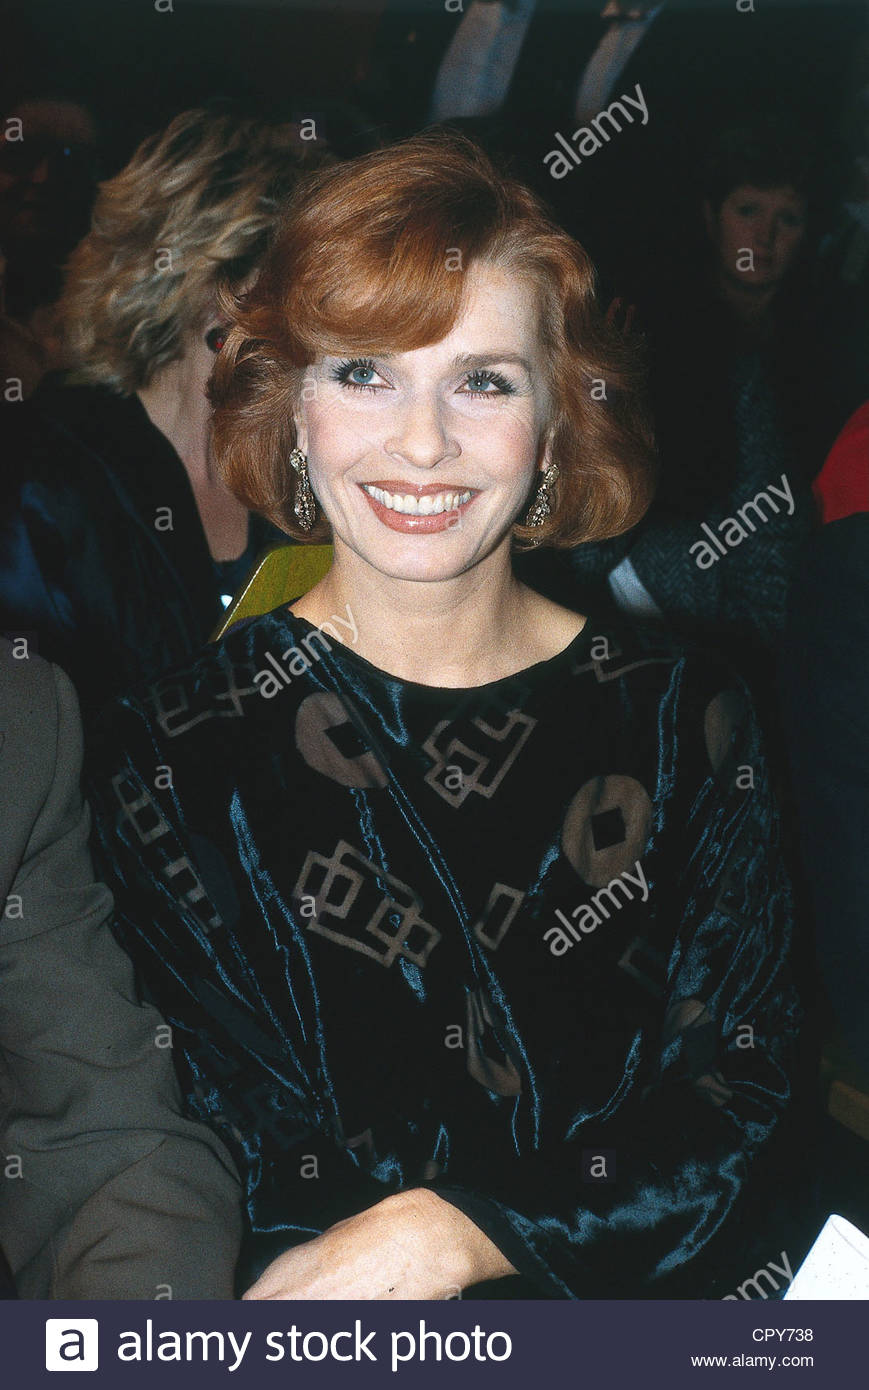 Berger, Senta, * 13.5.1941, Austrian actress, half length, 1980s, party, high society, VIP event, smiling, - Stock Image